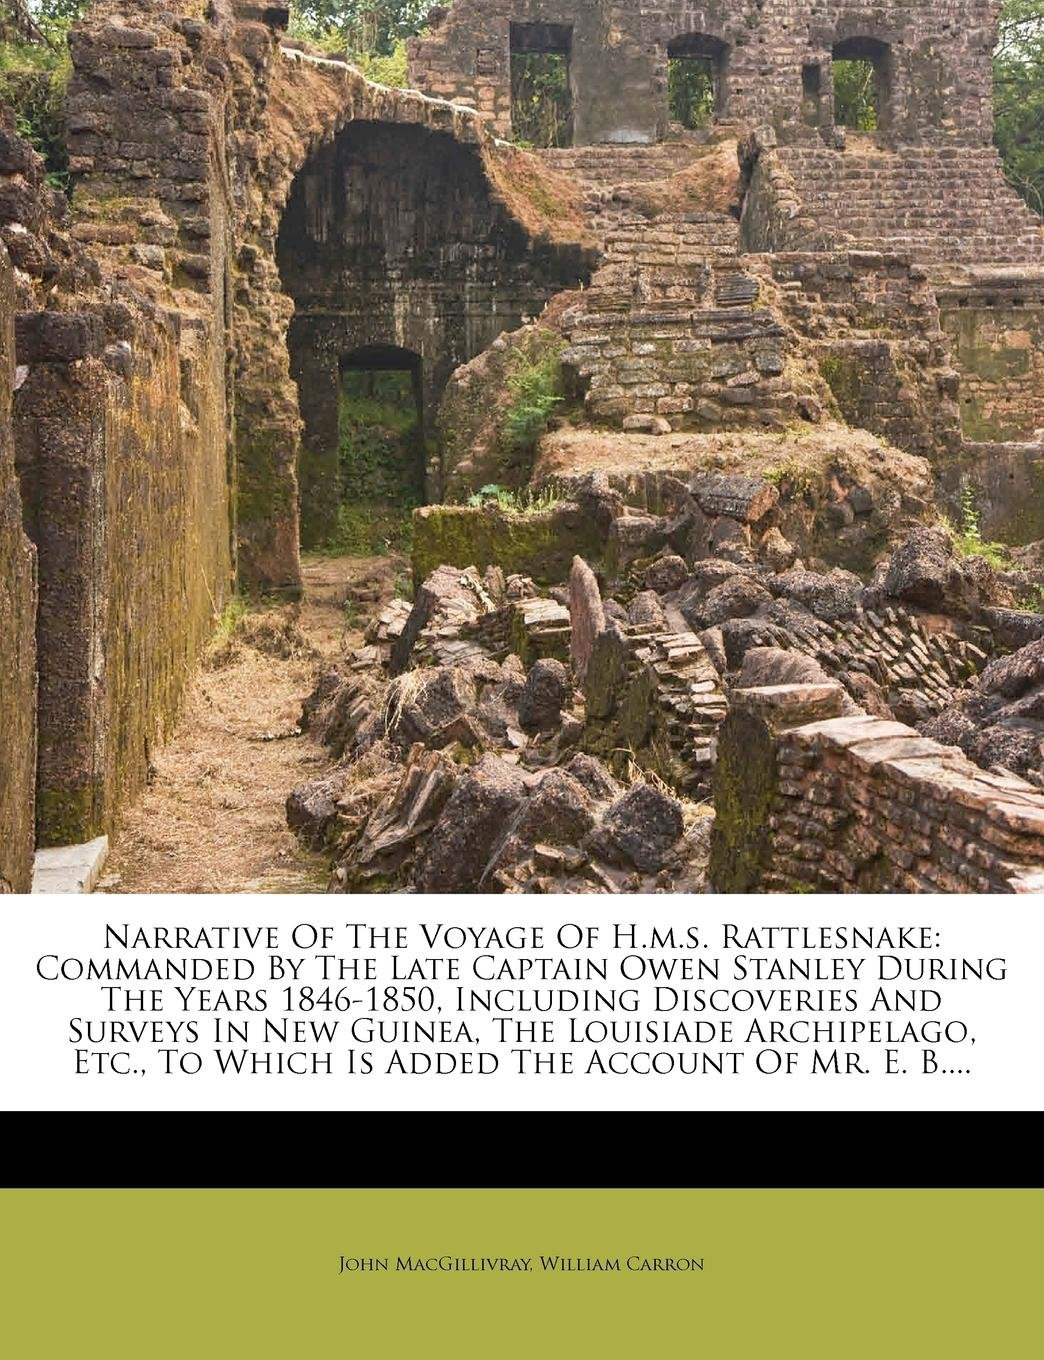 Download Narrative Of The Voyage Of H.m.s. Rattlesnake: Commanded By The Late Captain Owen Stanley During The Years 1846-1850, Including Discoveries And ... To Which Is Added The Account Of Mr. E. B.... pdf epub